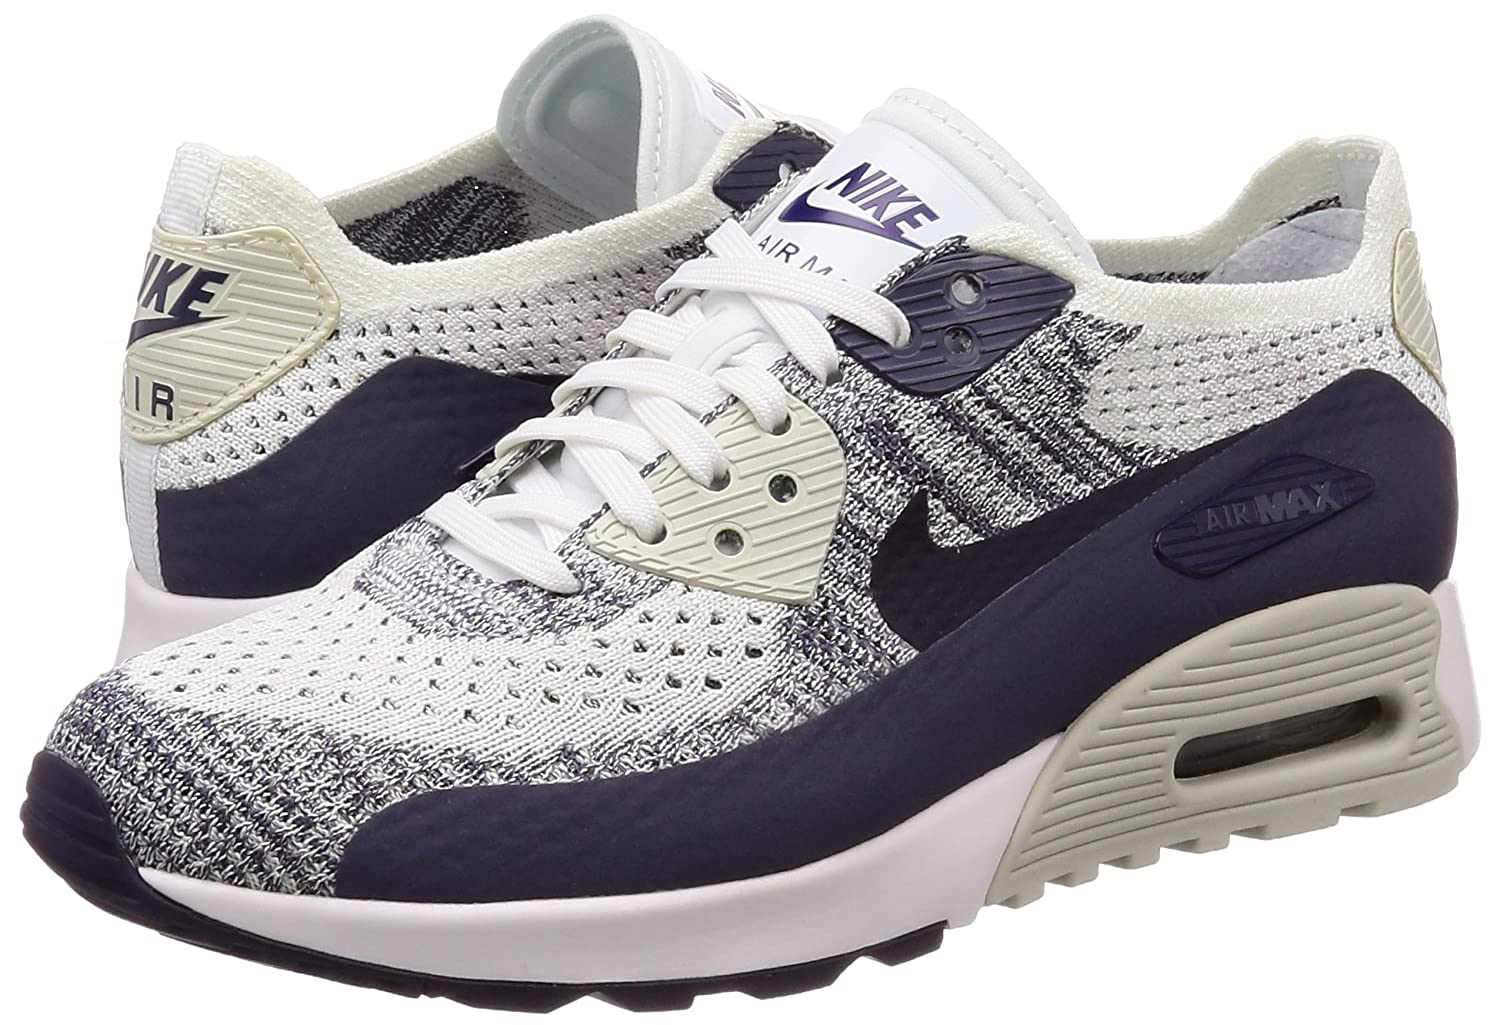 buy popular d64c0 a8ad3 Amazon.com   Nike Womens Air Max 90 Ultra 2.0 Flyknit Running Trainers  881109 Sneakers Shoes (UK 4 US 6.5 EU 37.5, White Dark Raisin 102)    Fashion Sneakers